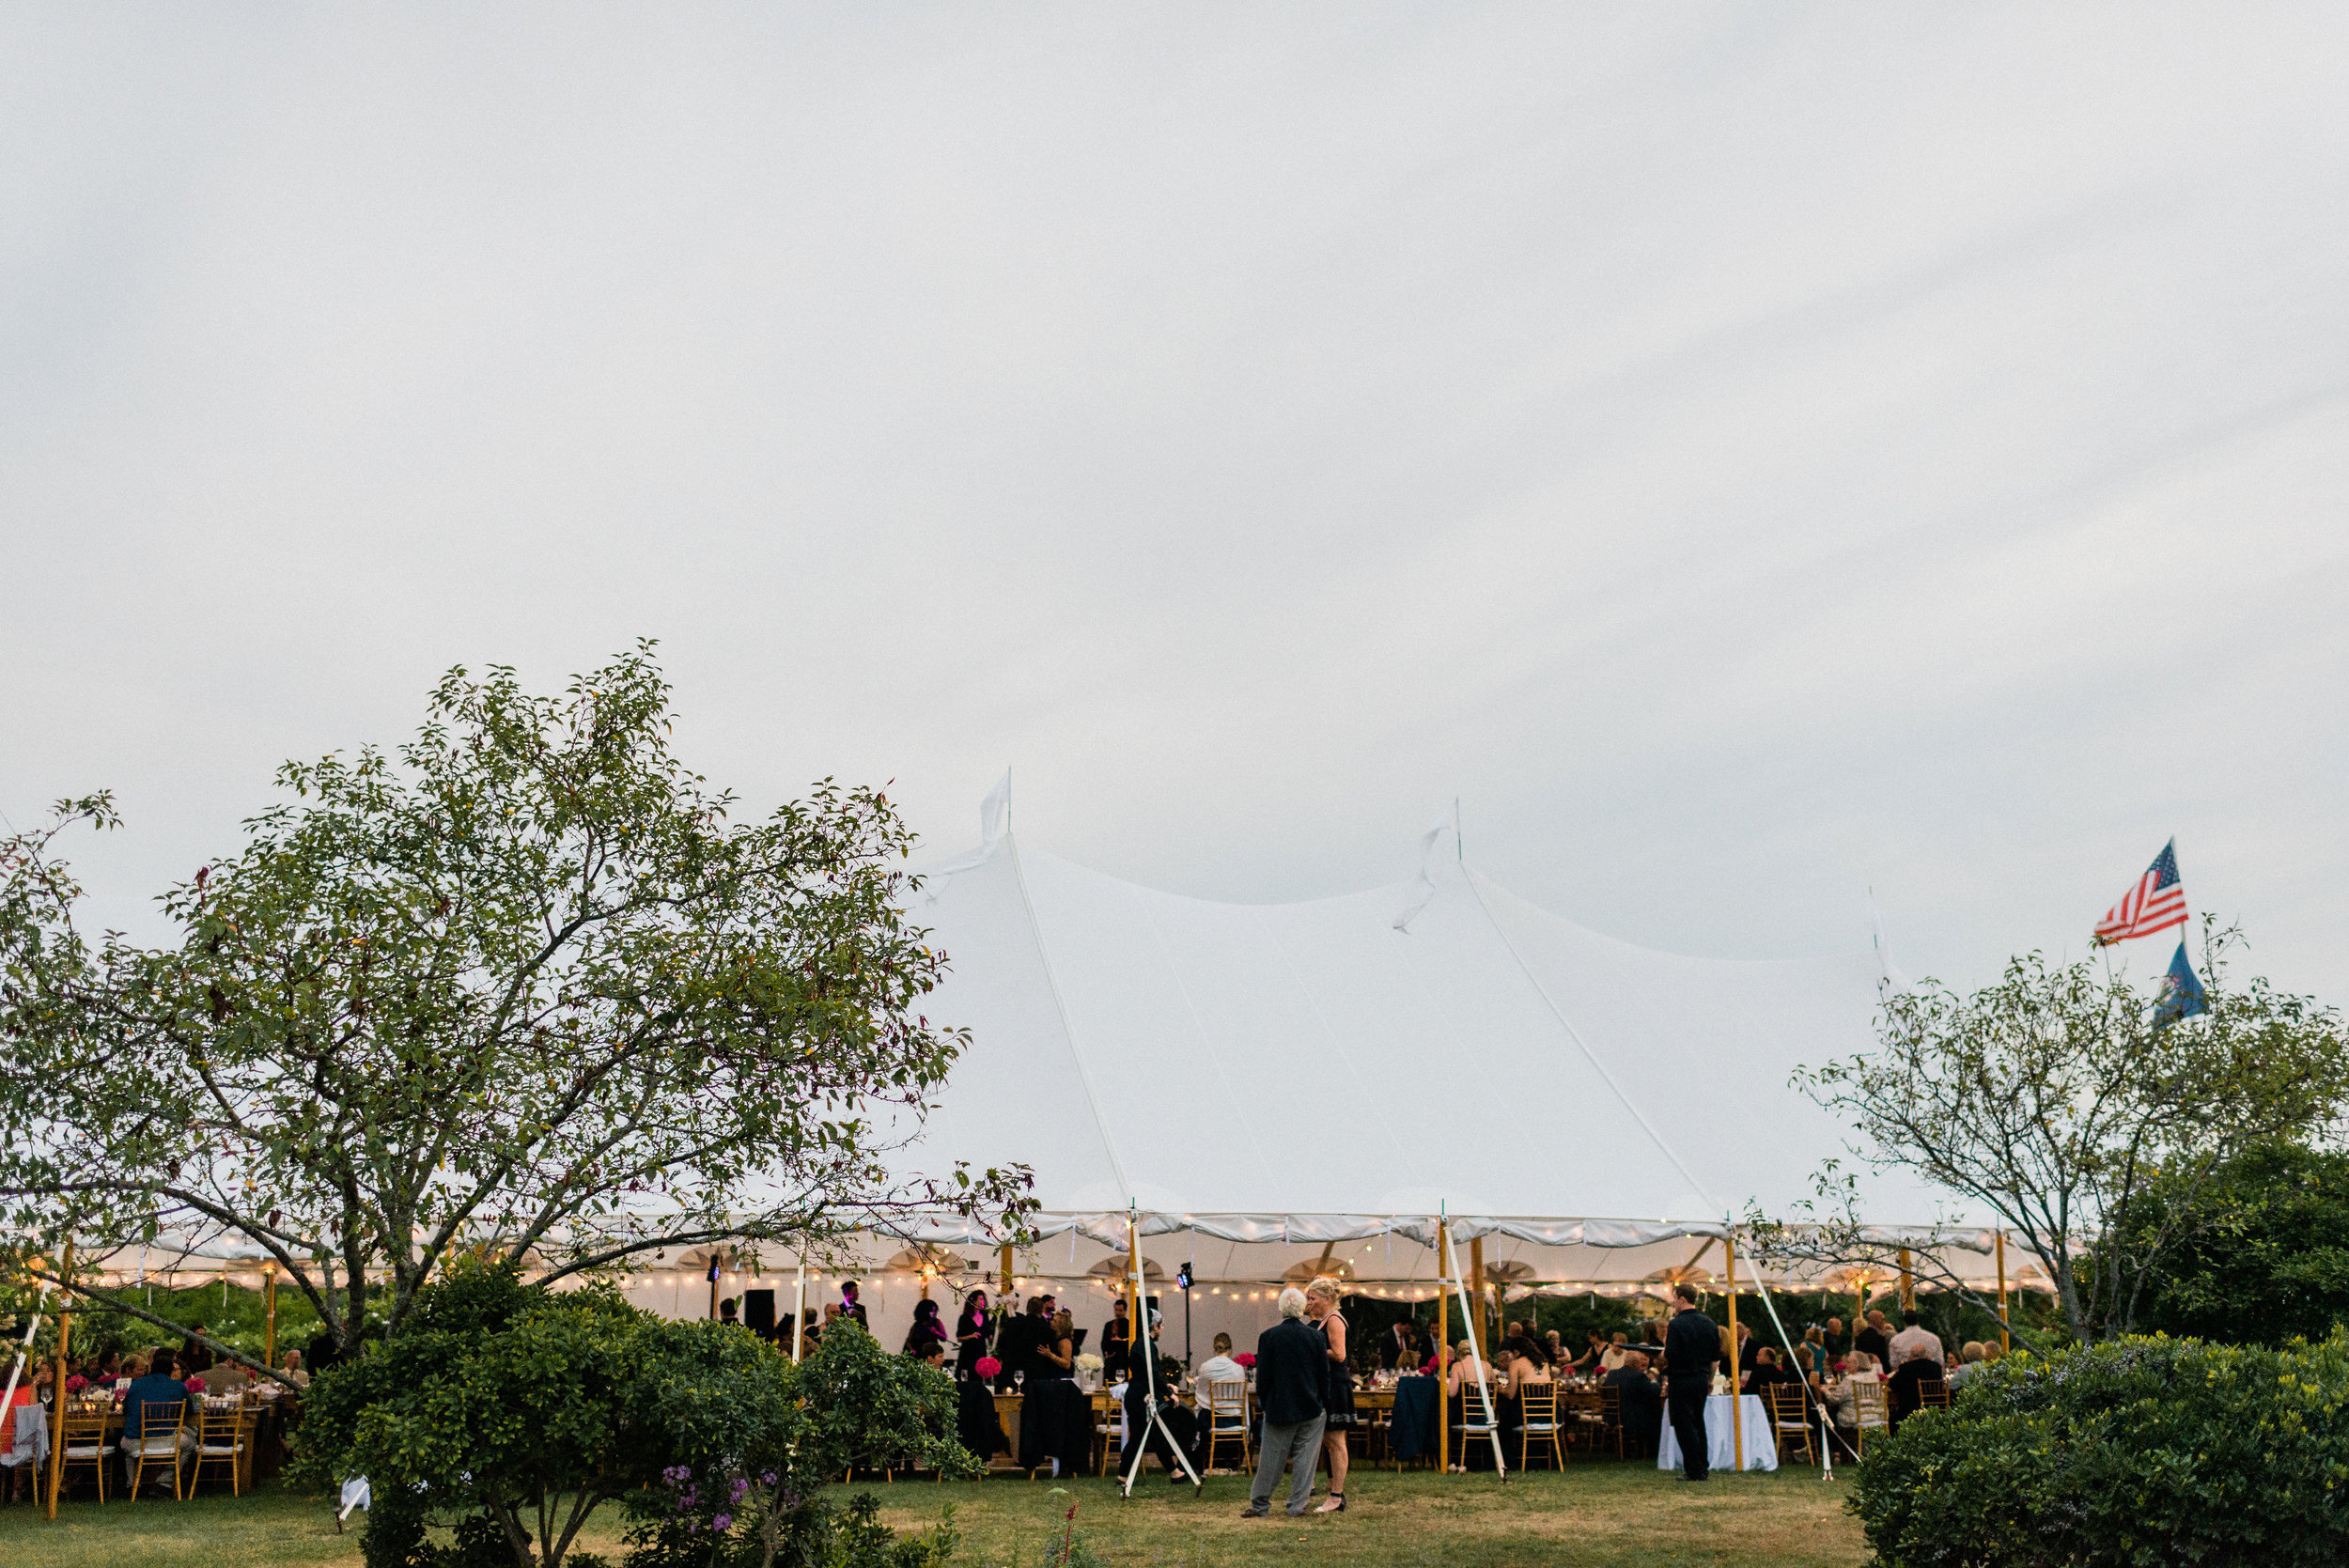 Alexandra-Elise-Photography-Ali-Reed-Chebeague-Island-Maine-Film-Wedding-Photographer-Elizabeth-Josh-Wedding-Reception-308.jpg